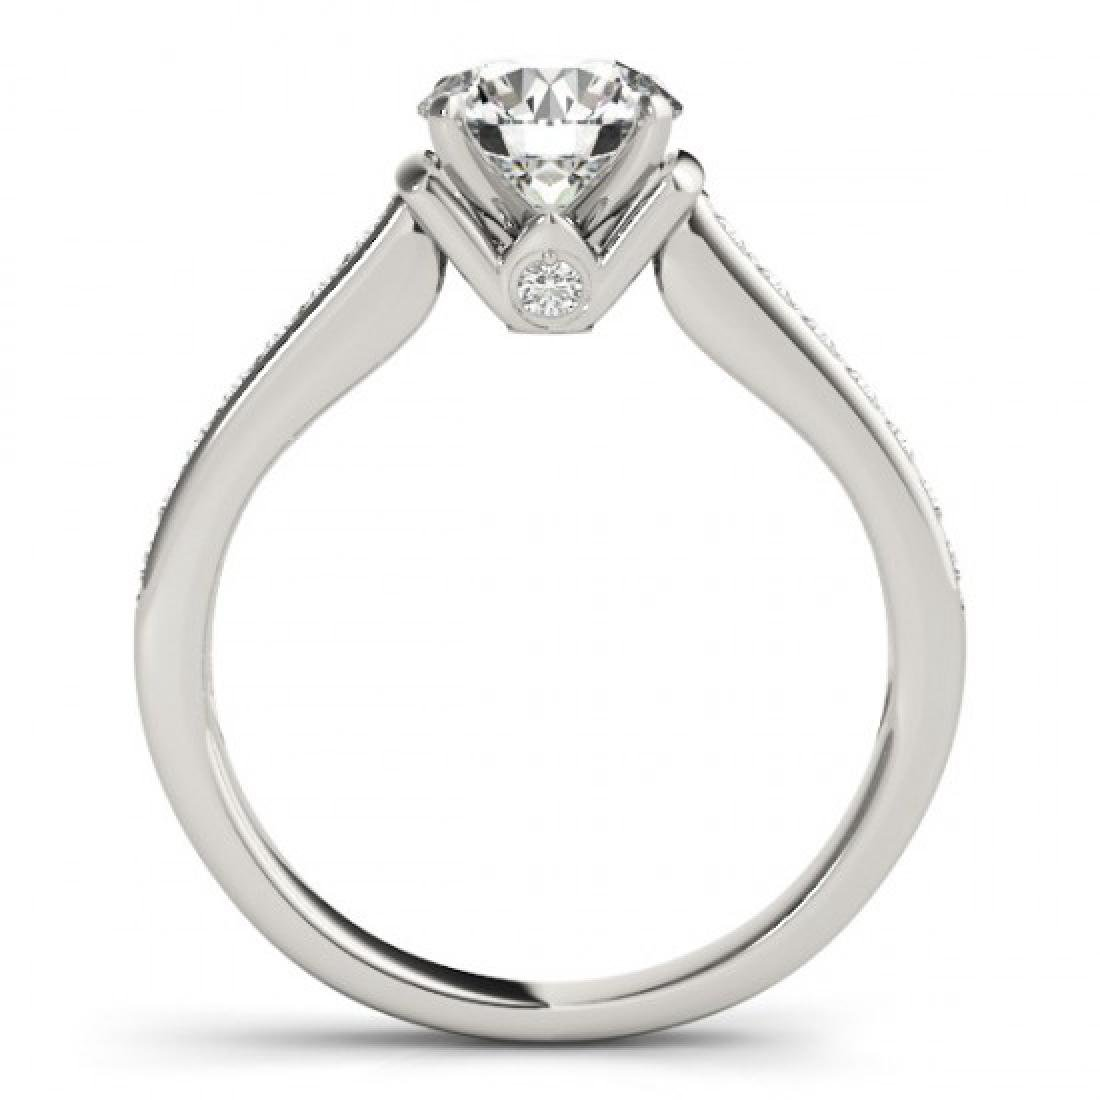 1.50 CTW VS/SI Diamond Solitaire Ring 18K White Gold - 2